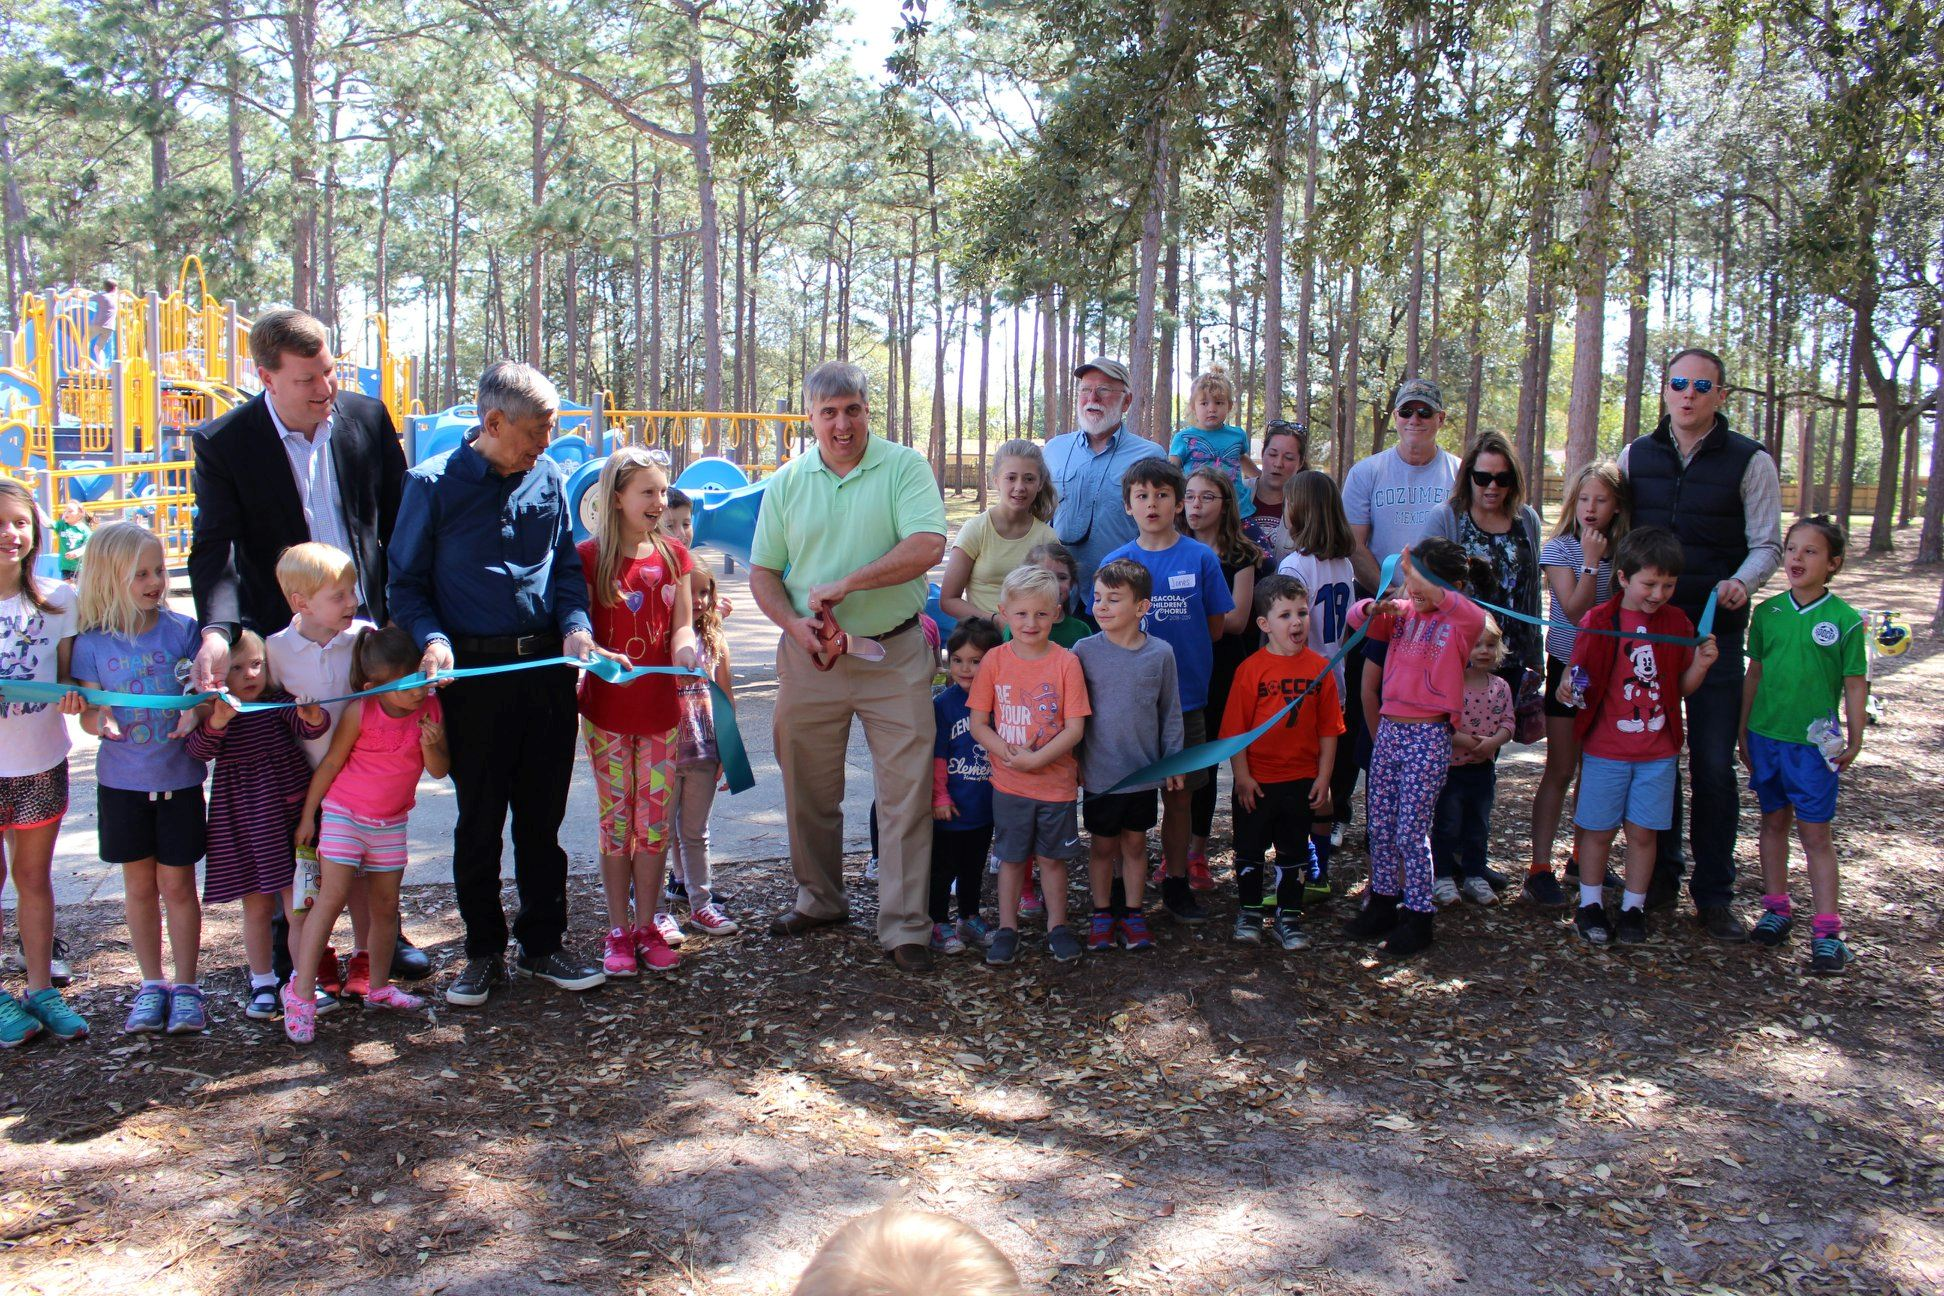 Mayor Grover Robinson and guests cut the ribbon on Hitzman-Optimist Park Playground